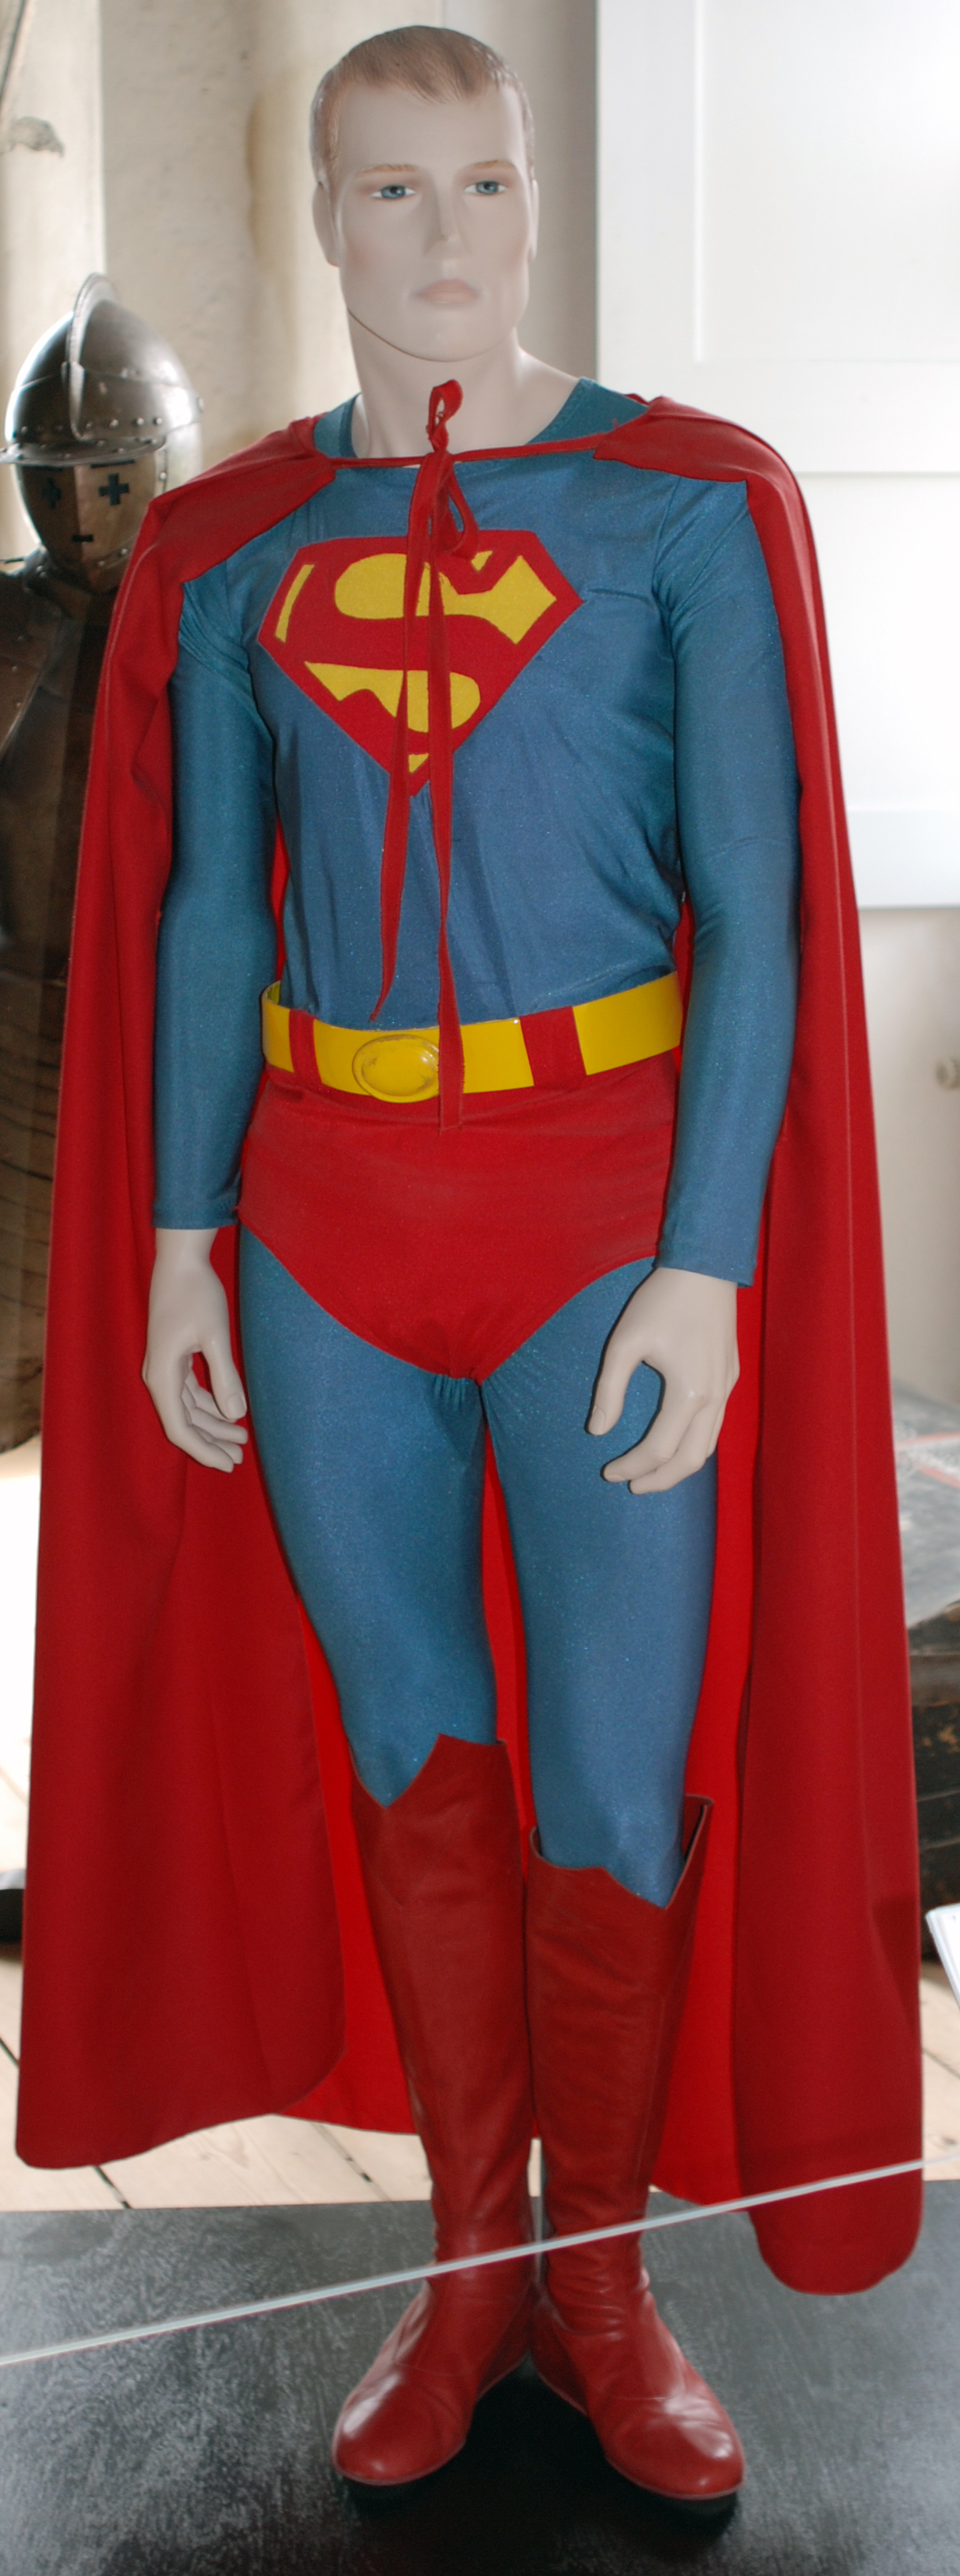 filesuperman costumejpg wikimedia commons